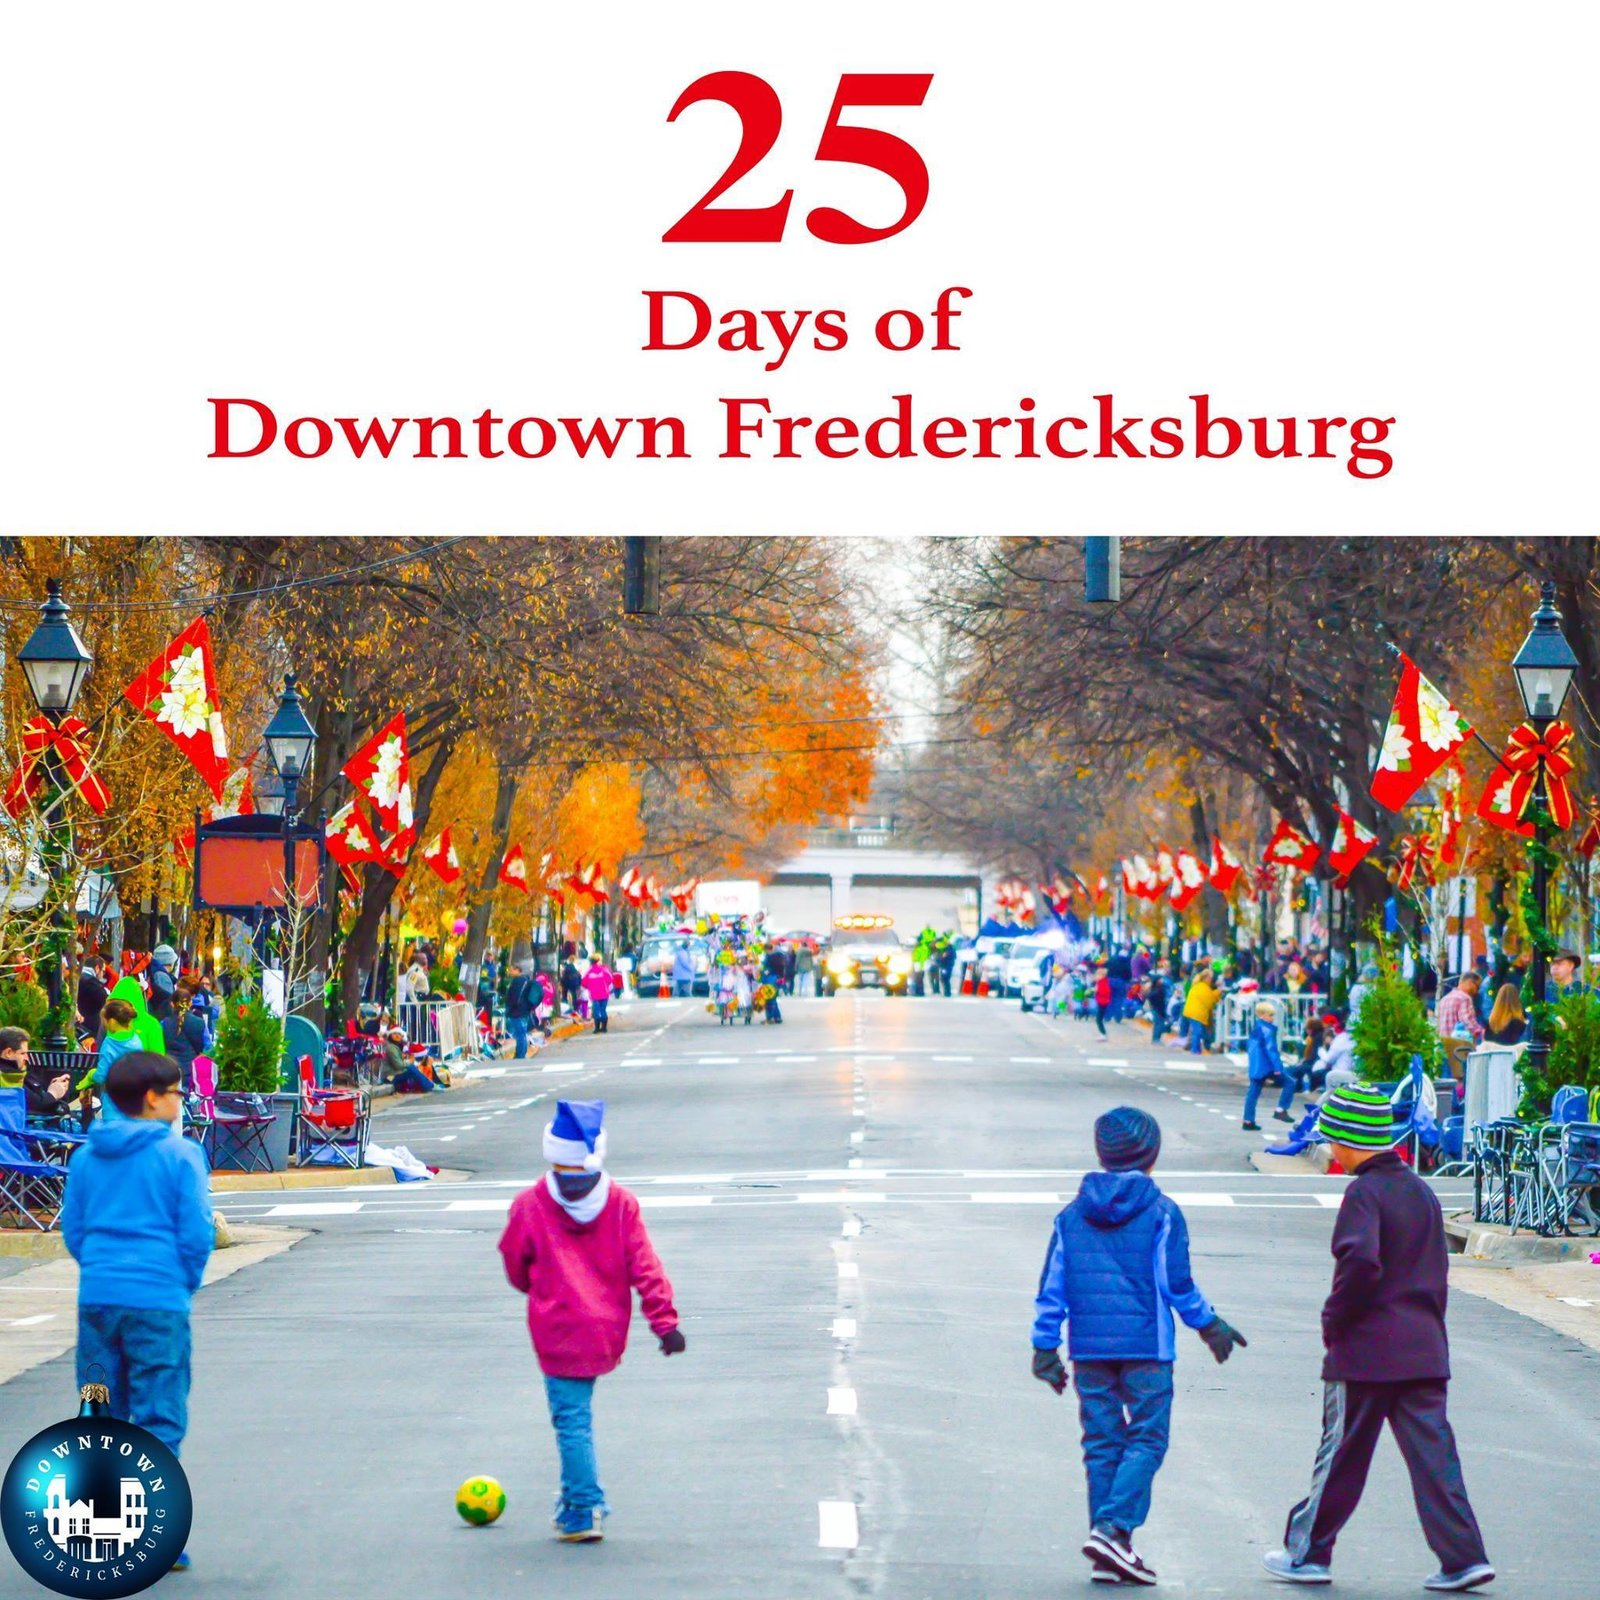 Gift Twenty-five The last gift on our list is something you can't buy. It's the gift of family and friends wrapped in love.  Merry Christmas from Downtown Fredericksburg. https://www.facebook.com/DowntownFredericksburg/  25 Days of Downtown Fredericksburg